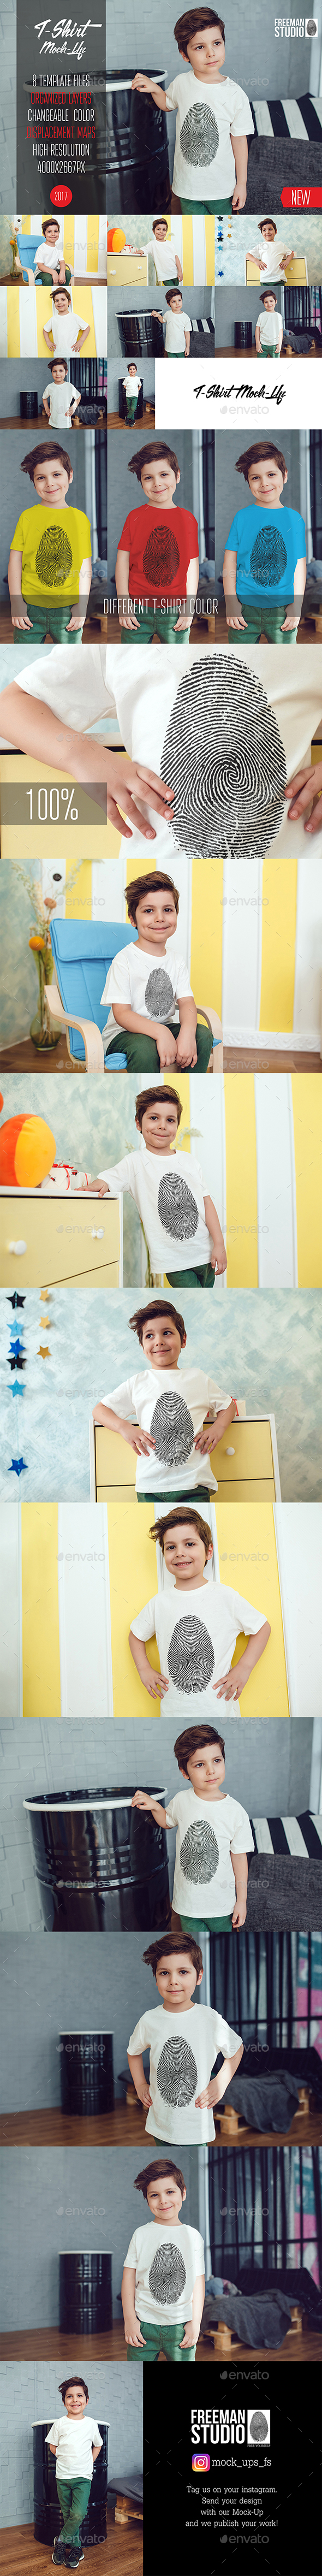 Kids T-Shirt Mock-Up Vol.2 2017 - Product Mock-Ups Graphics